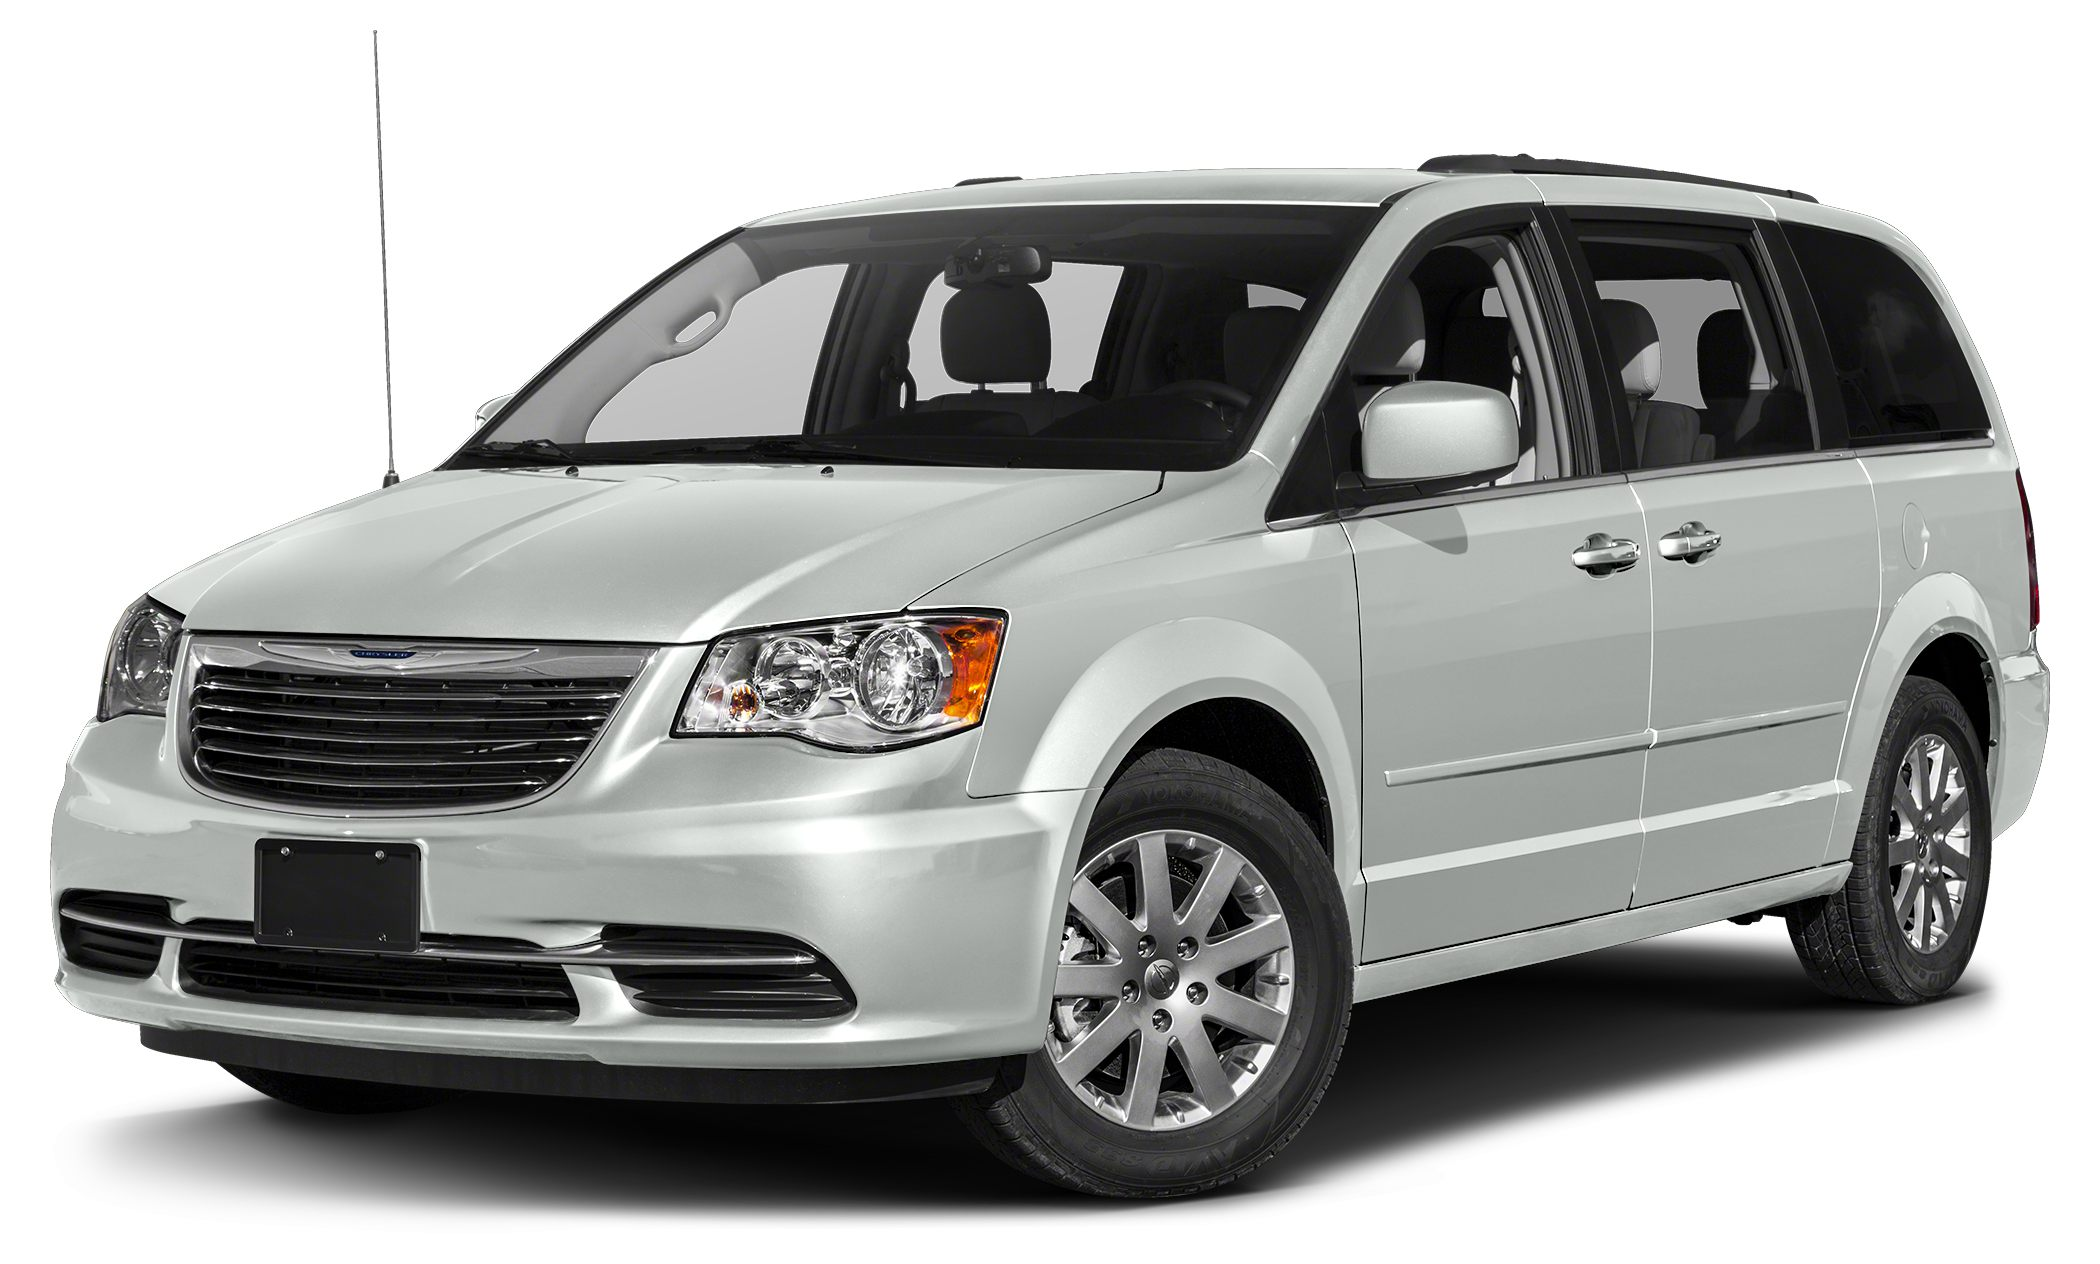 2016 Chrysler Town  Country Touring Get Hooked On Route 44 Hyundai Isnt it time for a Chrysler